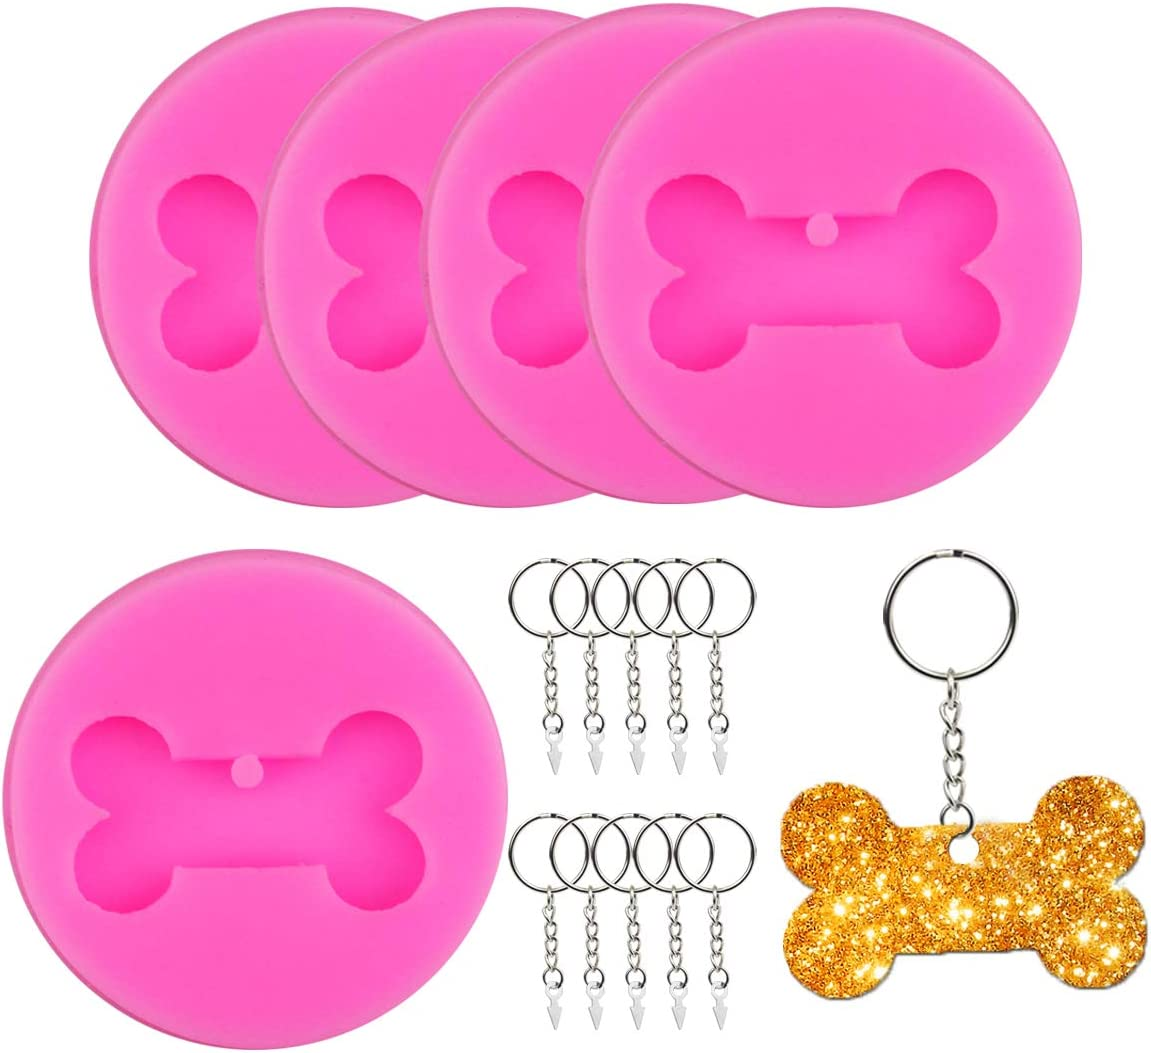 Chistepper 5 Pieces Dog Bone Silicone Molds Fondant Molds Dog Bone Shaped Keychain Resin Molds with 10 Pieces Key Rings for DIY Keychain Making Resin Crafting